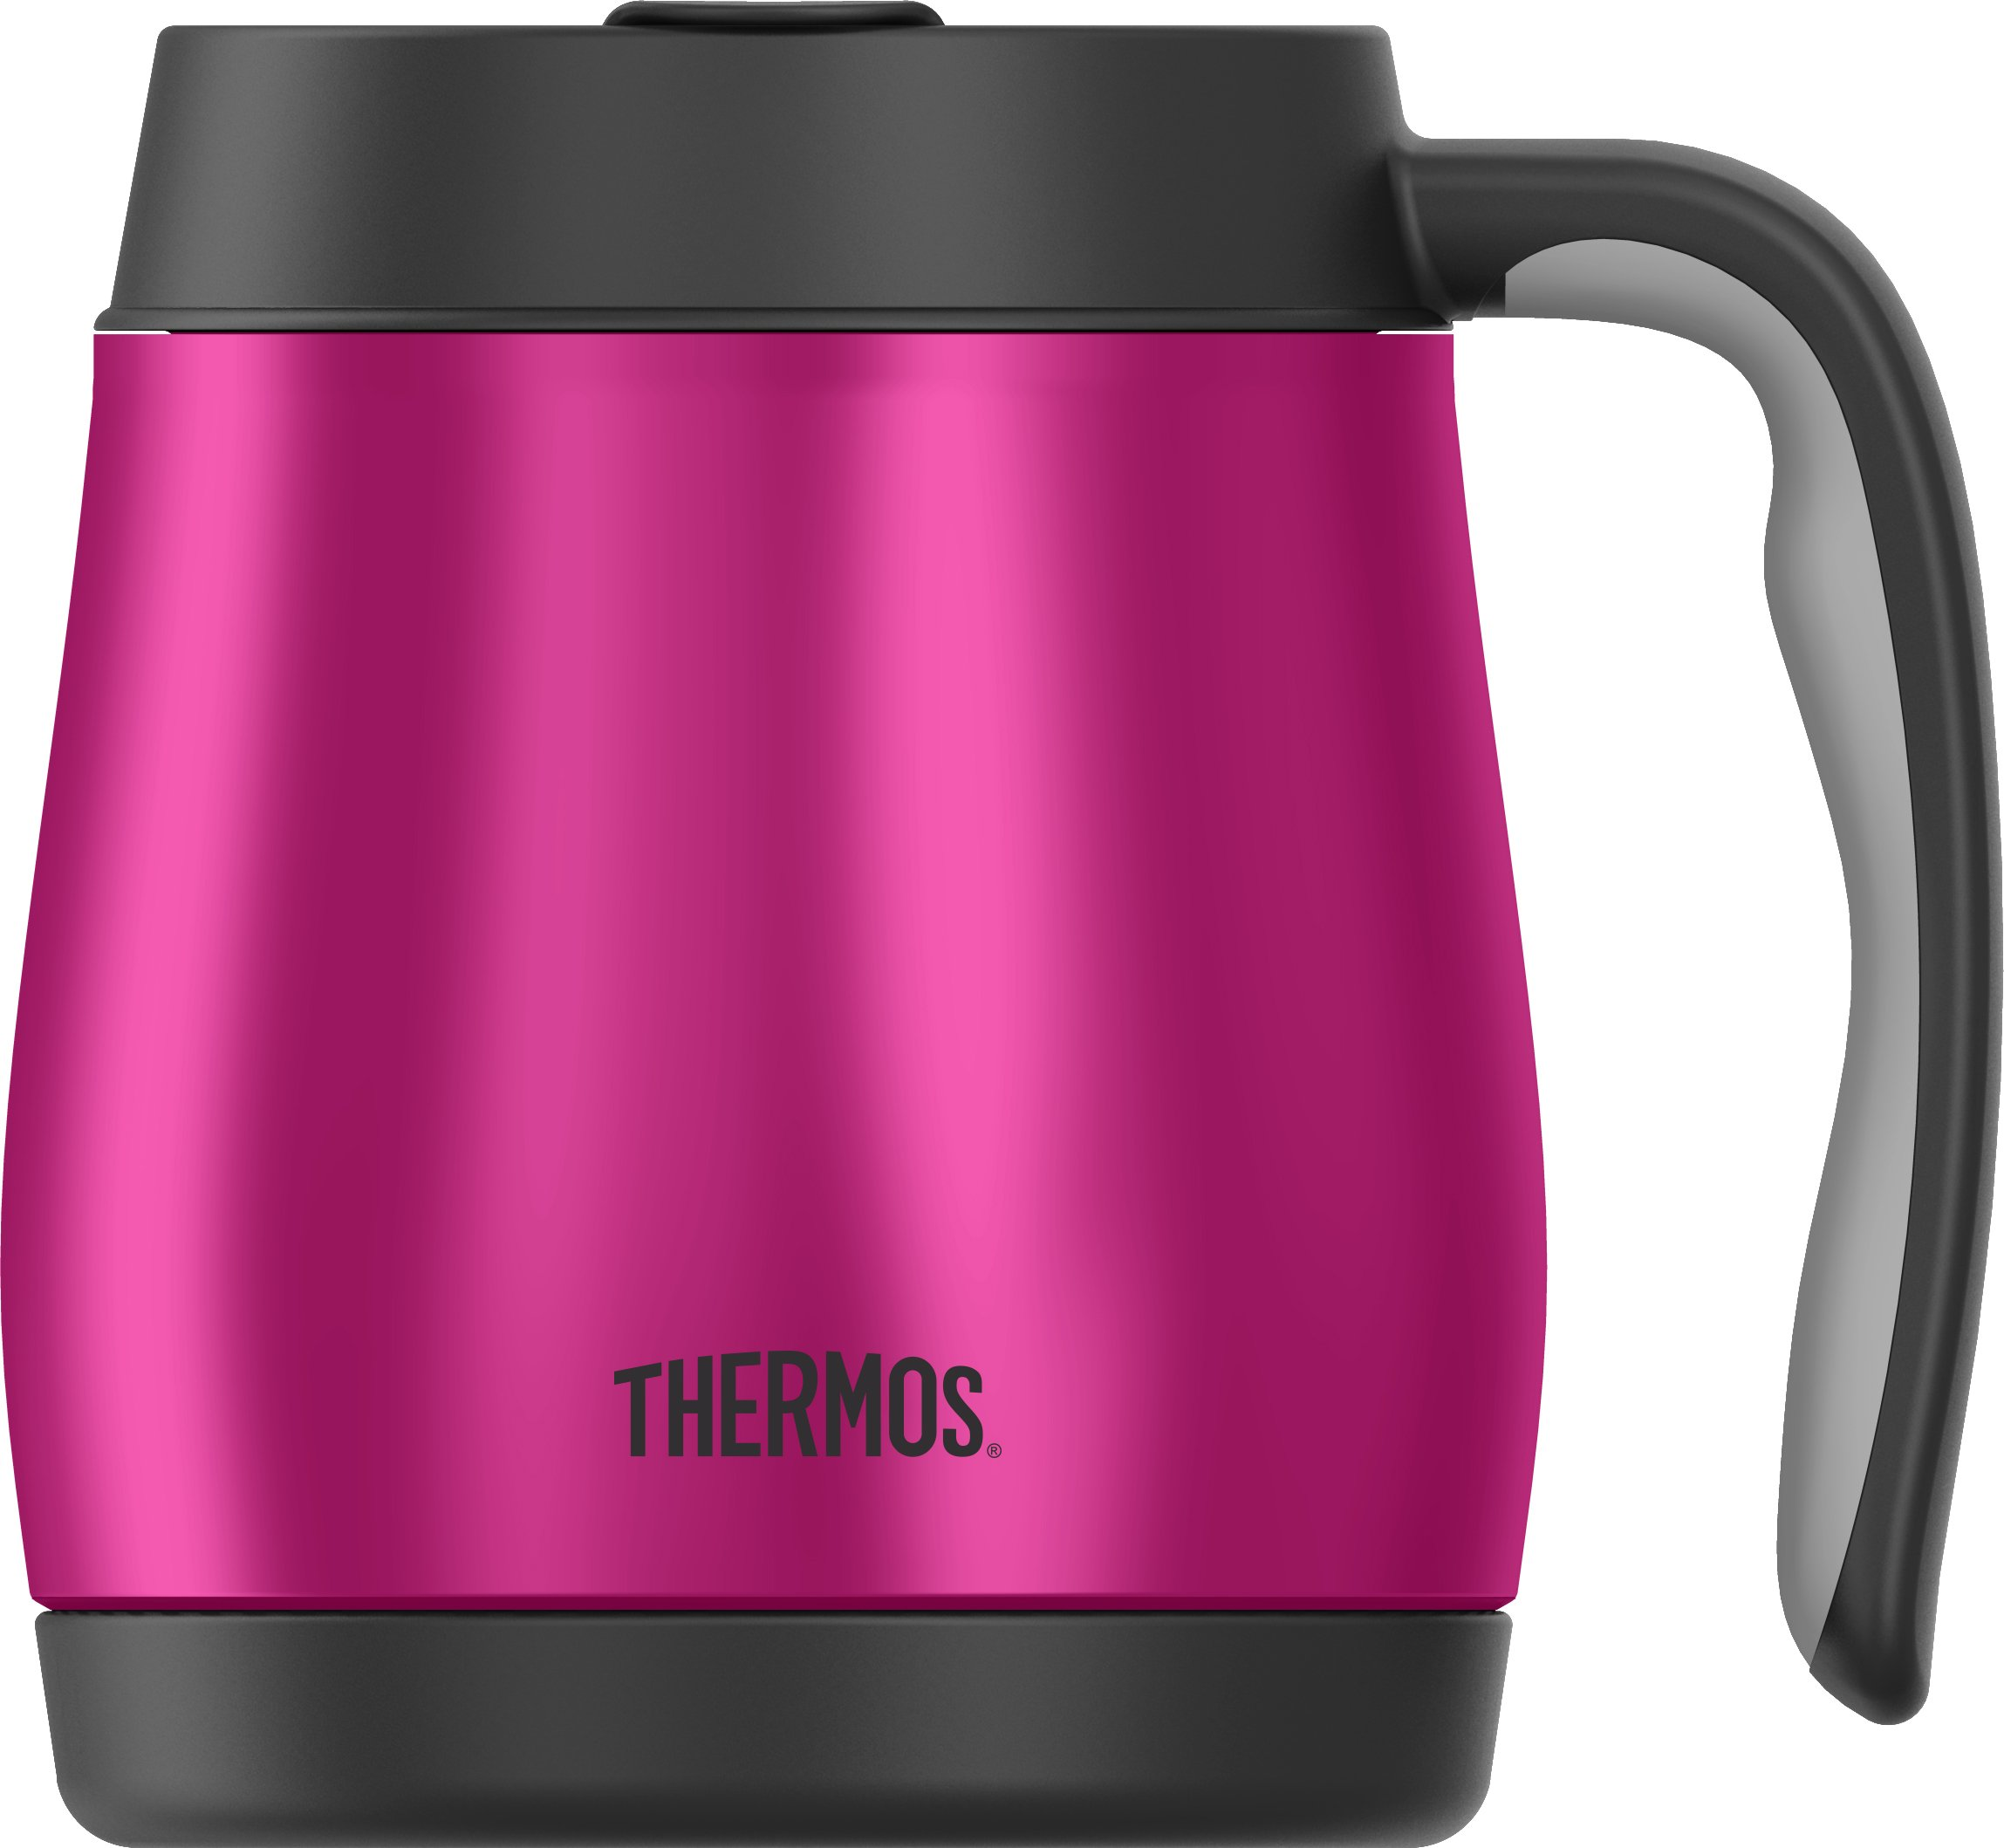 Thermos 16 Ounce Desk Mug, Stainless Steel/Magenta